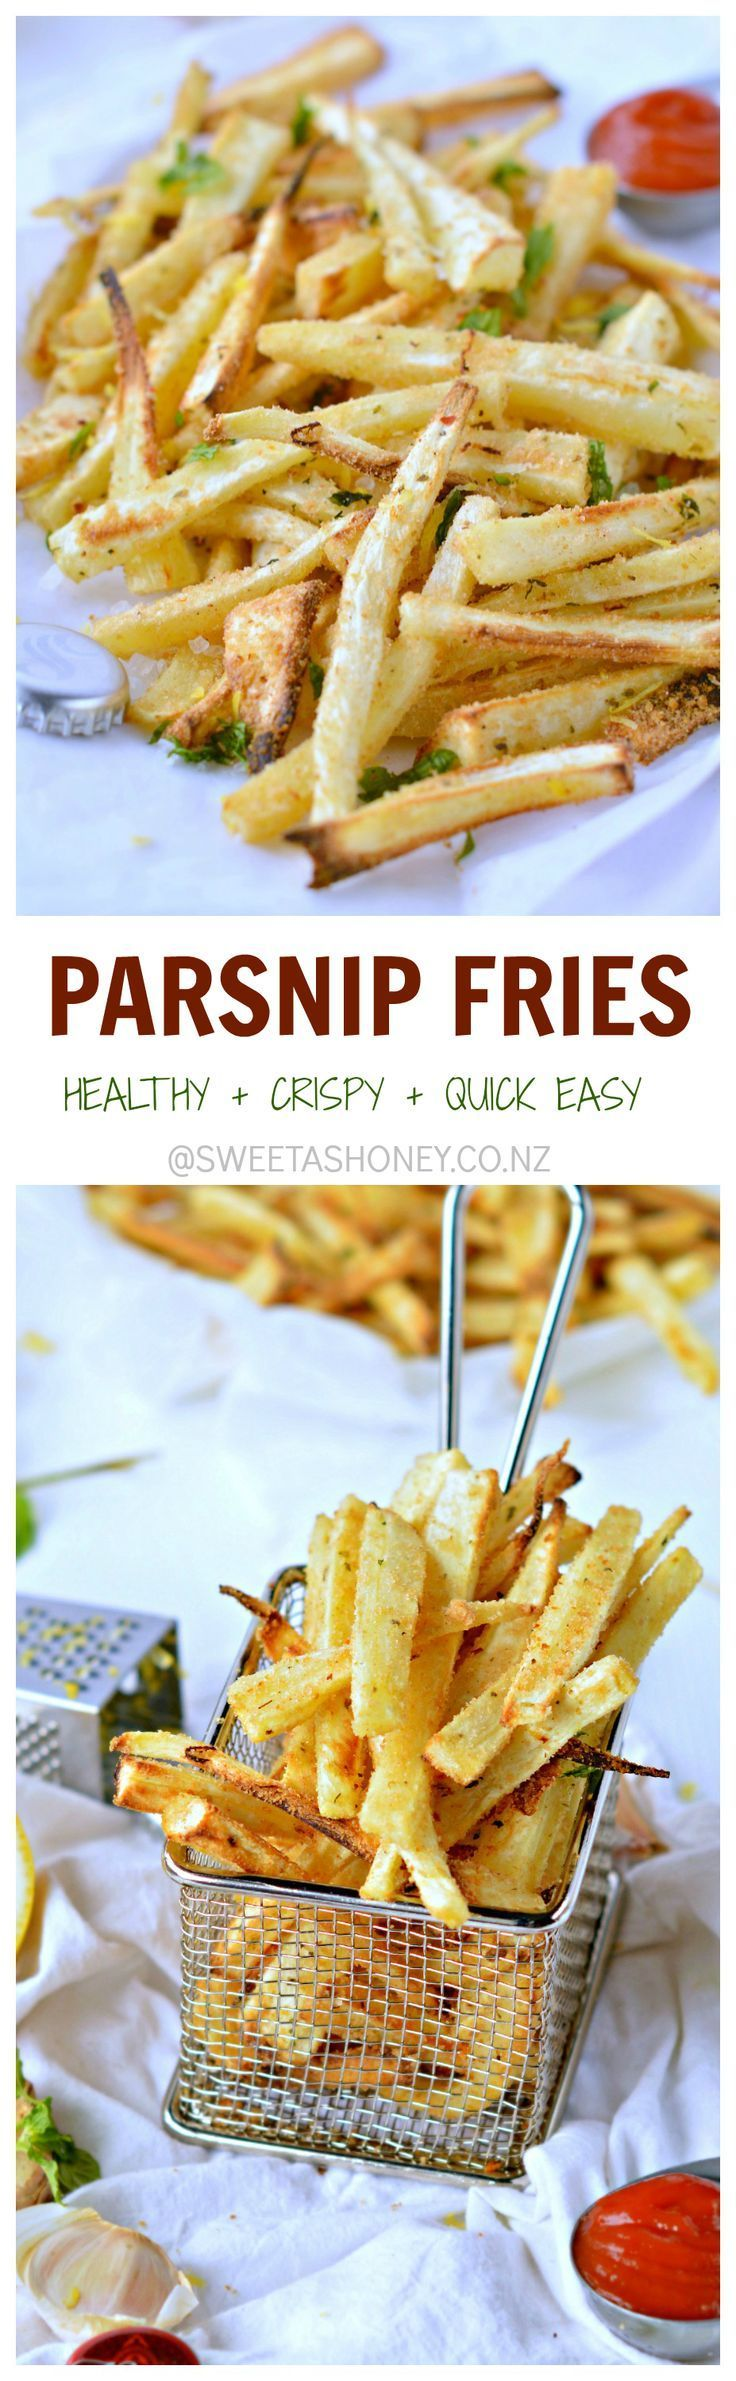 Healthy Fries recipe alternative | Clean eating fries | low carb fries | low calorie fries | oven fries | gluten free fries |weight watcher fries